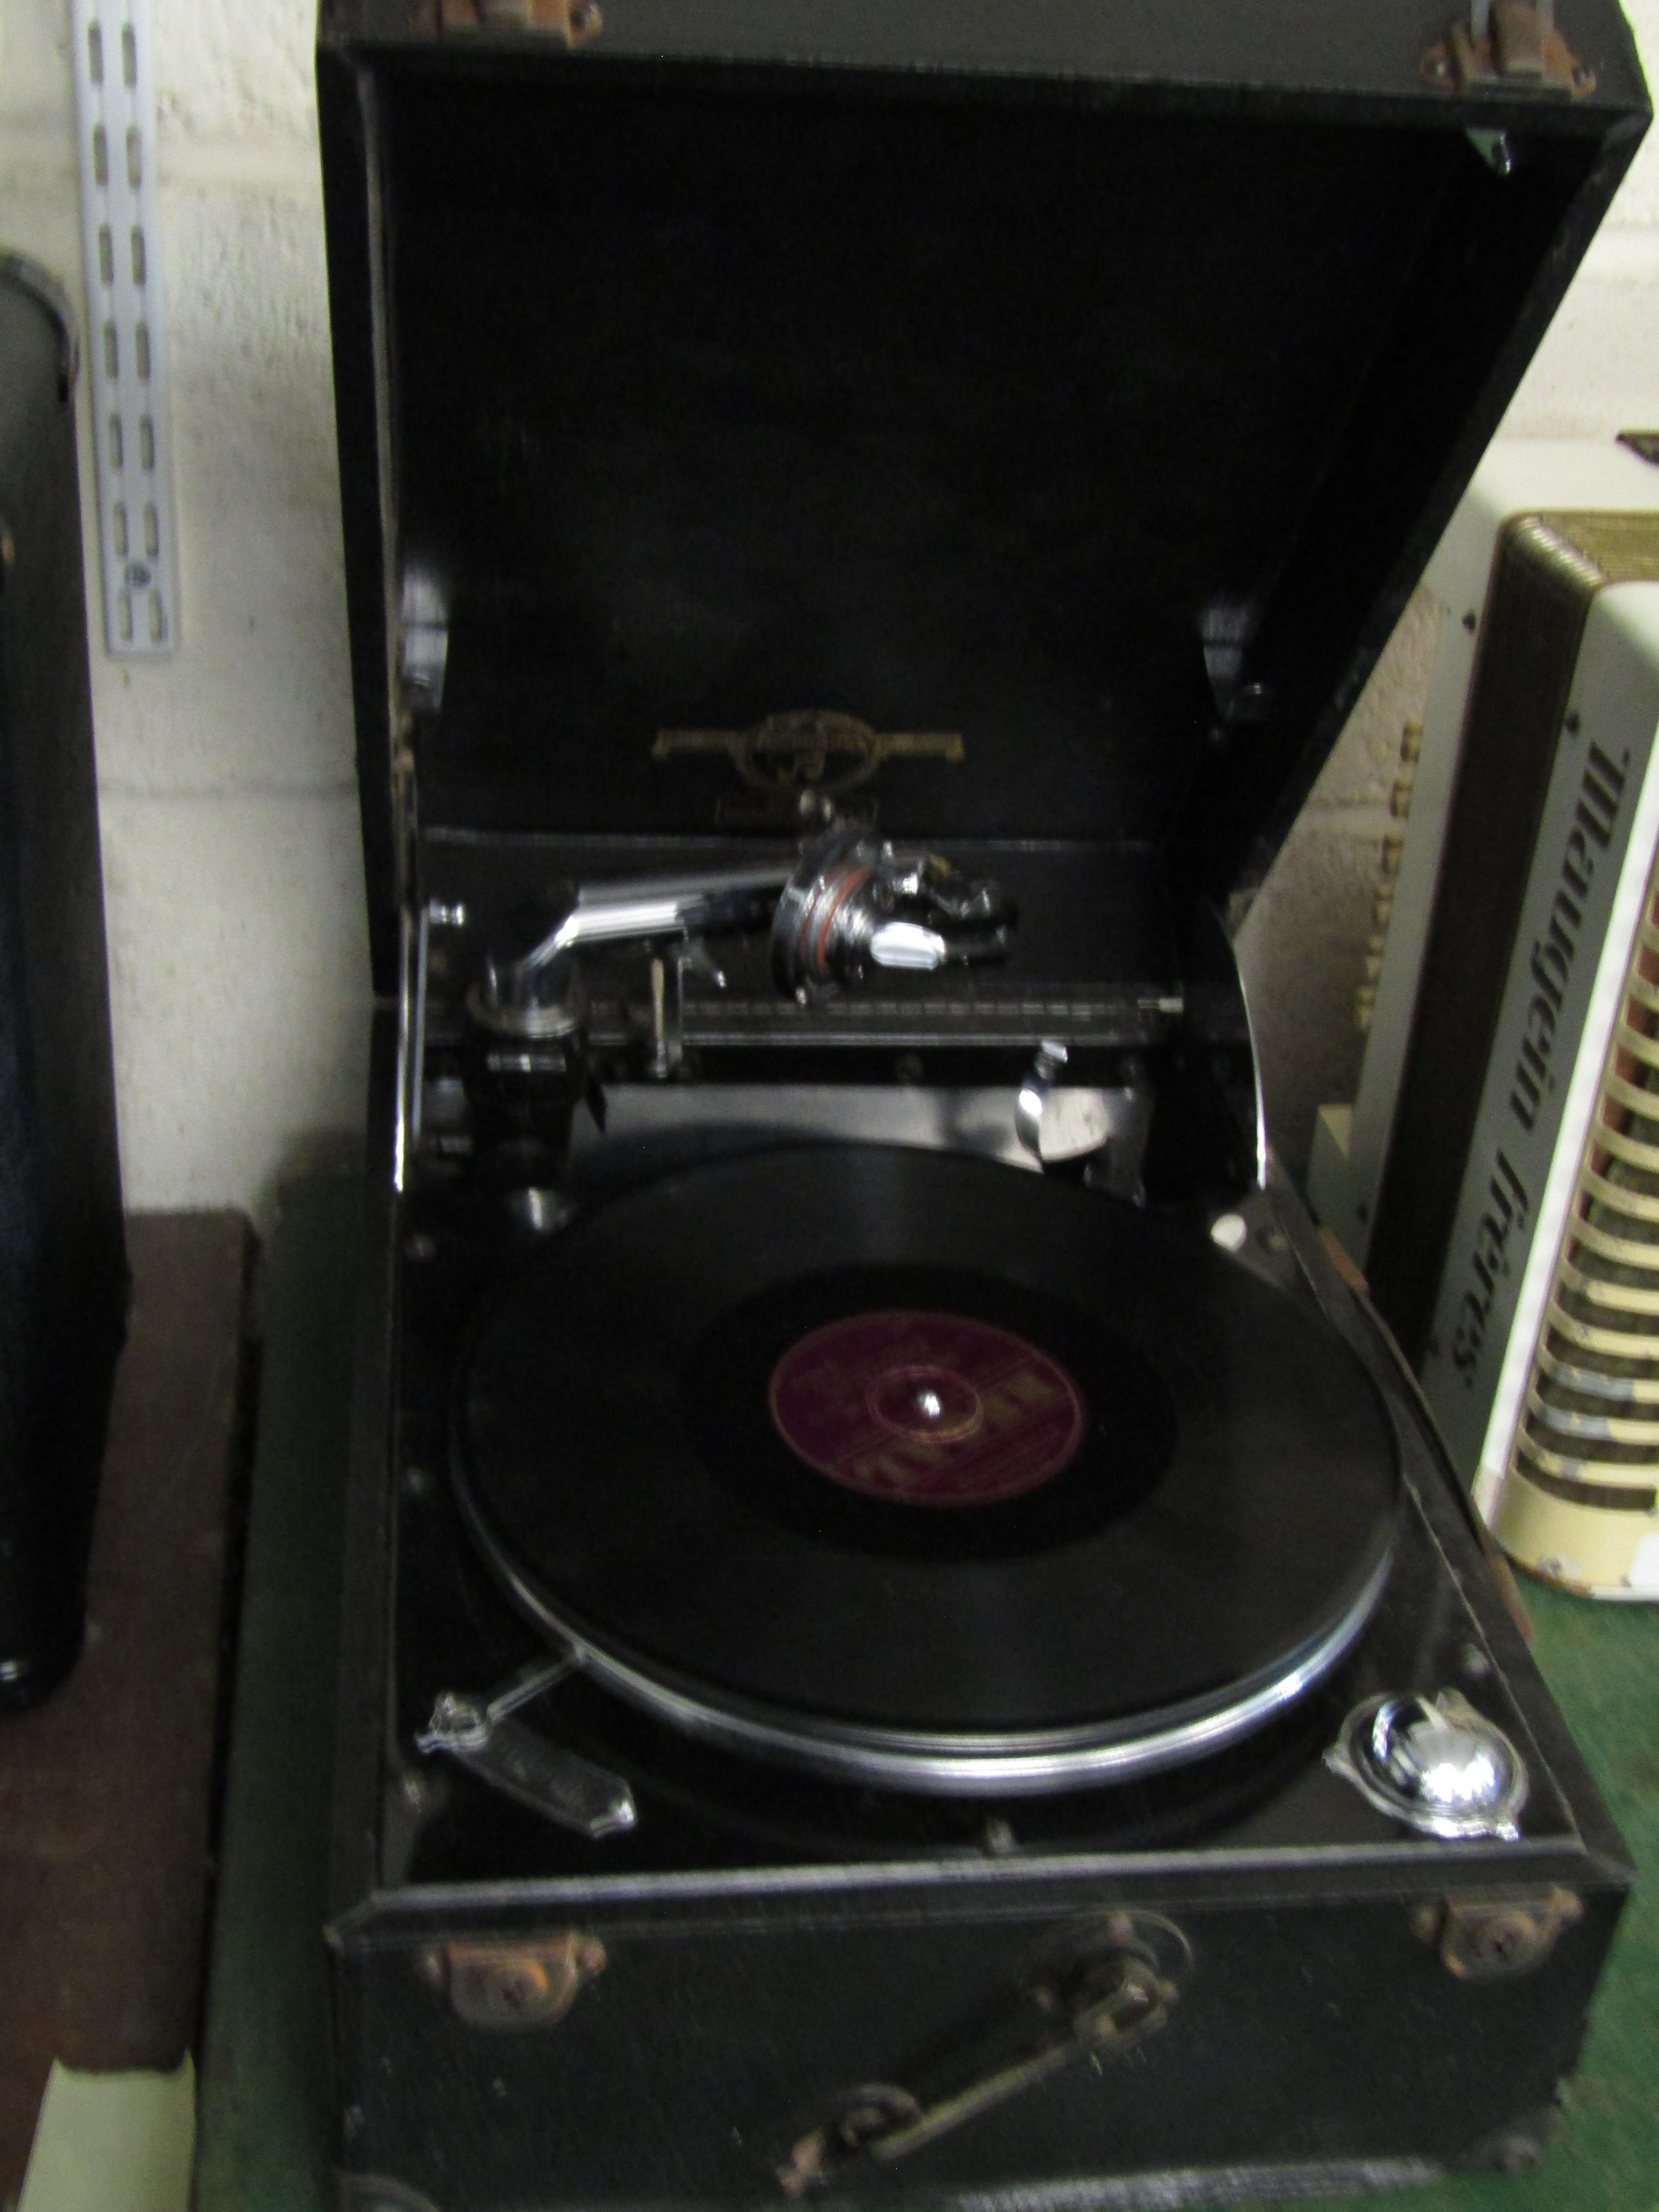 REXINE CASED COLUMBIA RECORD PLAYER MODEL 202